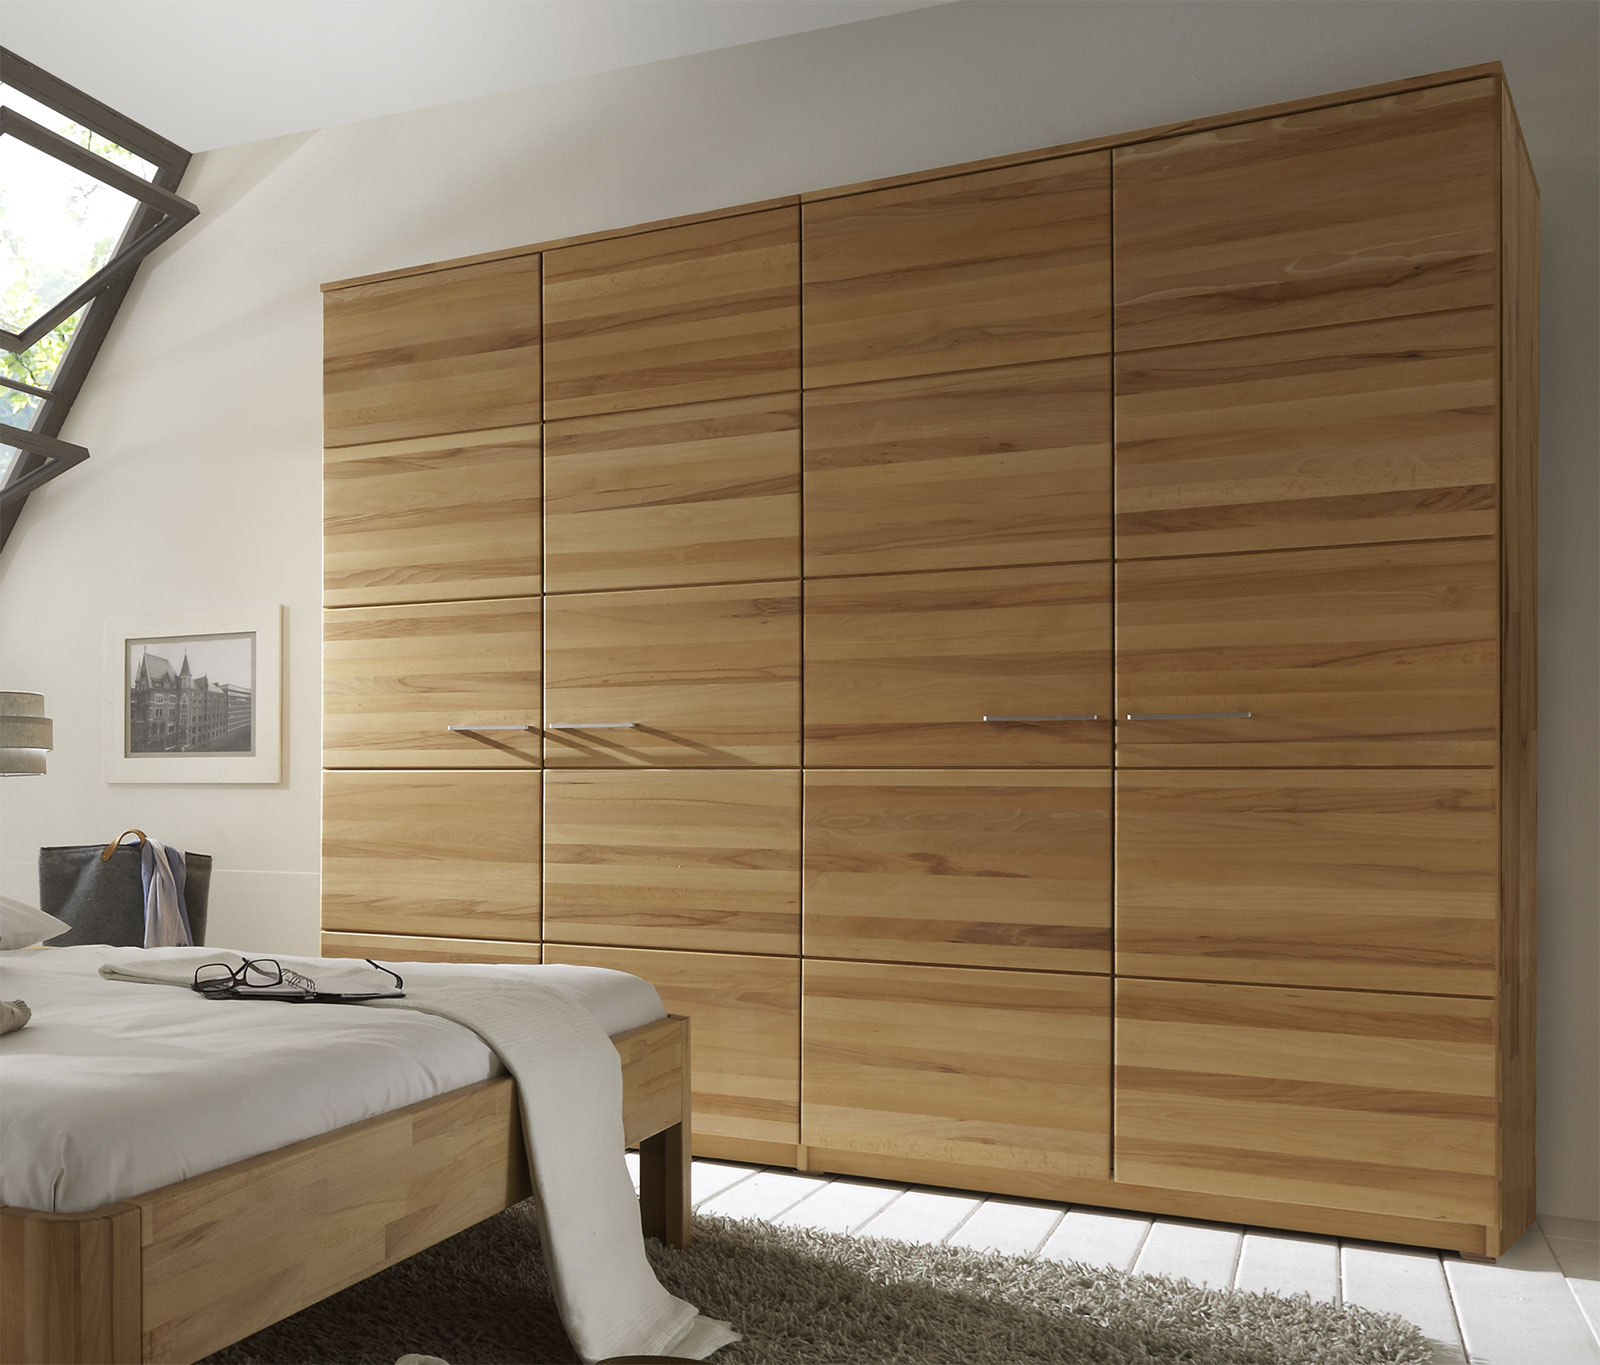 schlafzimmerschrank holz massiv kleiderschrank kiefer massiv gelaugt ge lt luxury fotografie. Black Bedroom Furniture Sets. Home Design Ideas